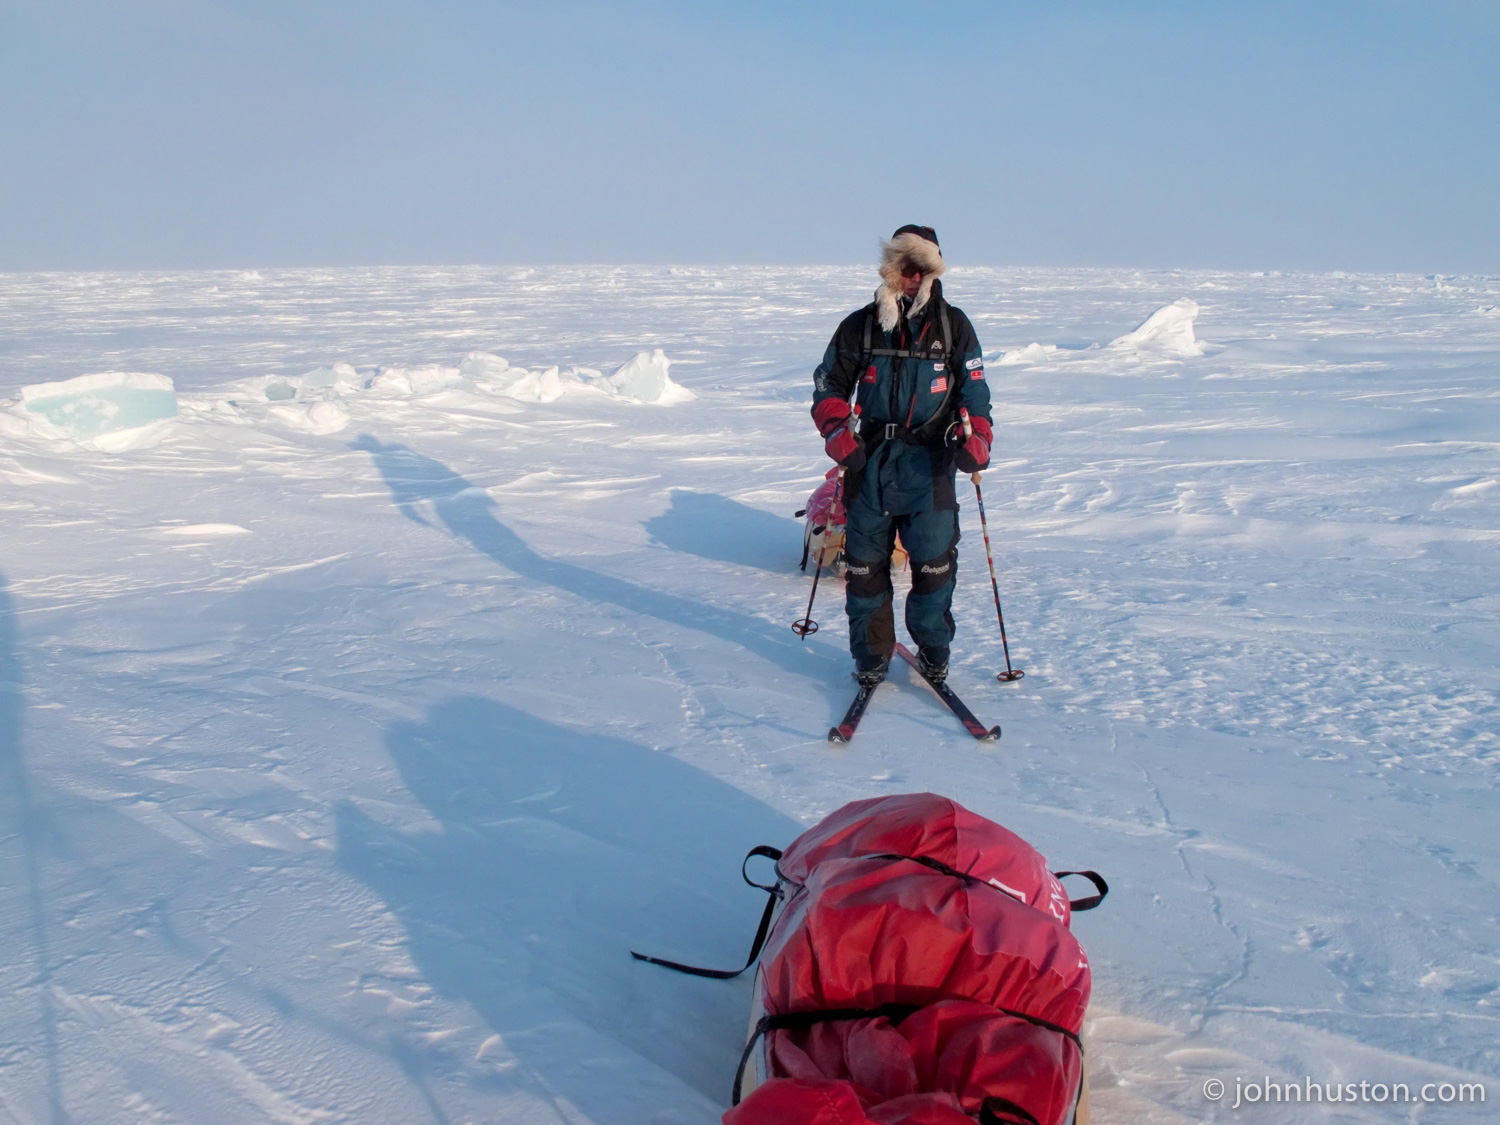 60 nautical miles to the North Pole!